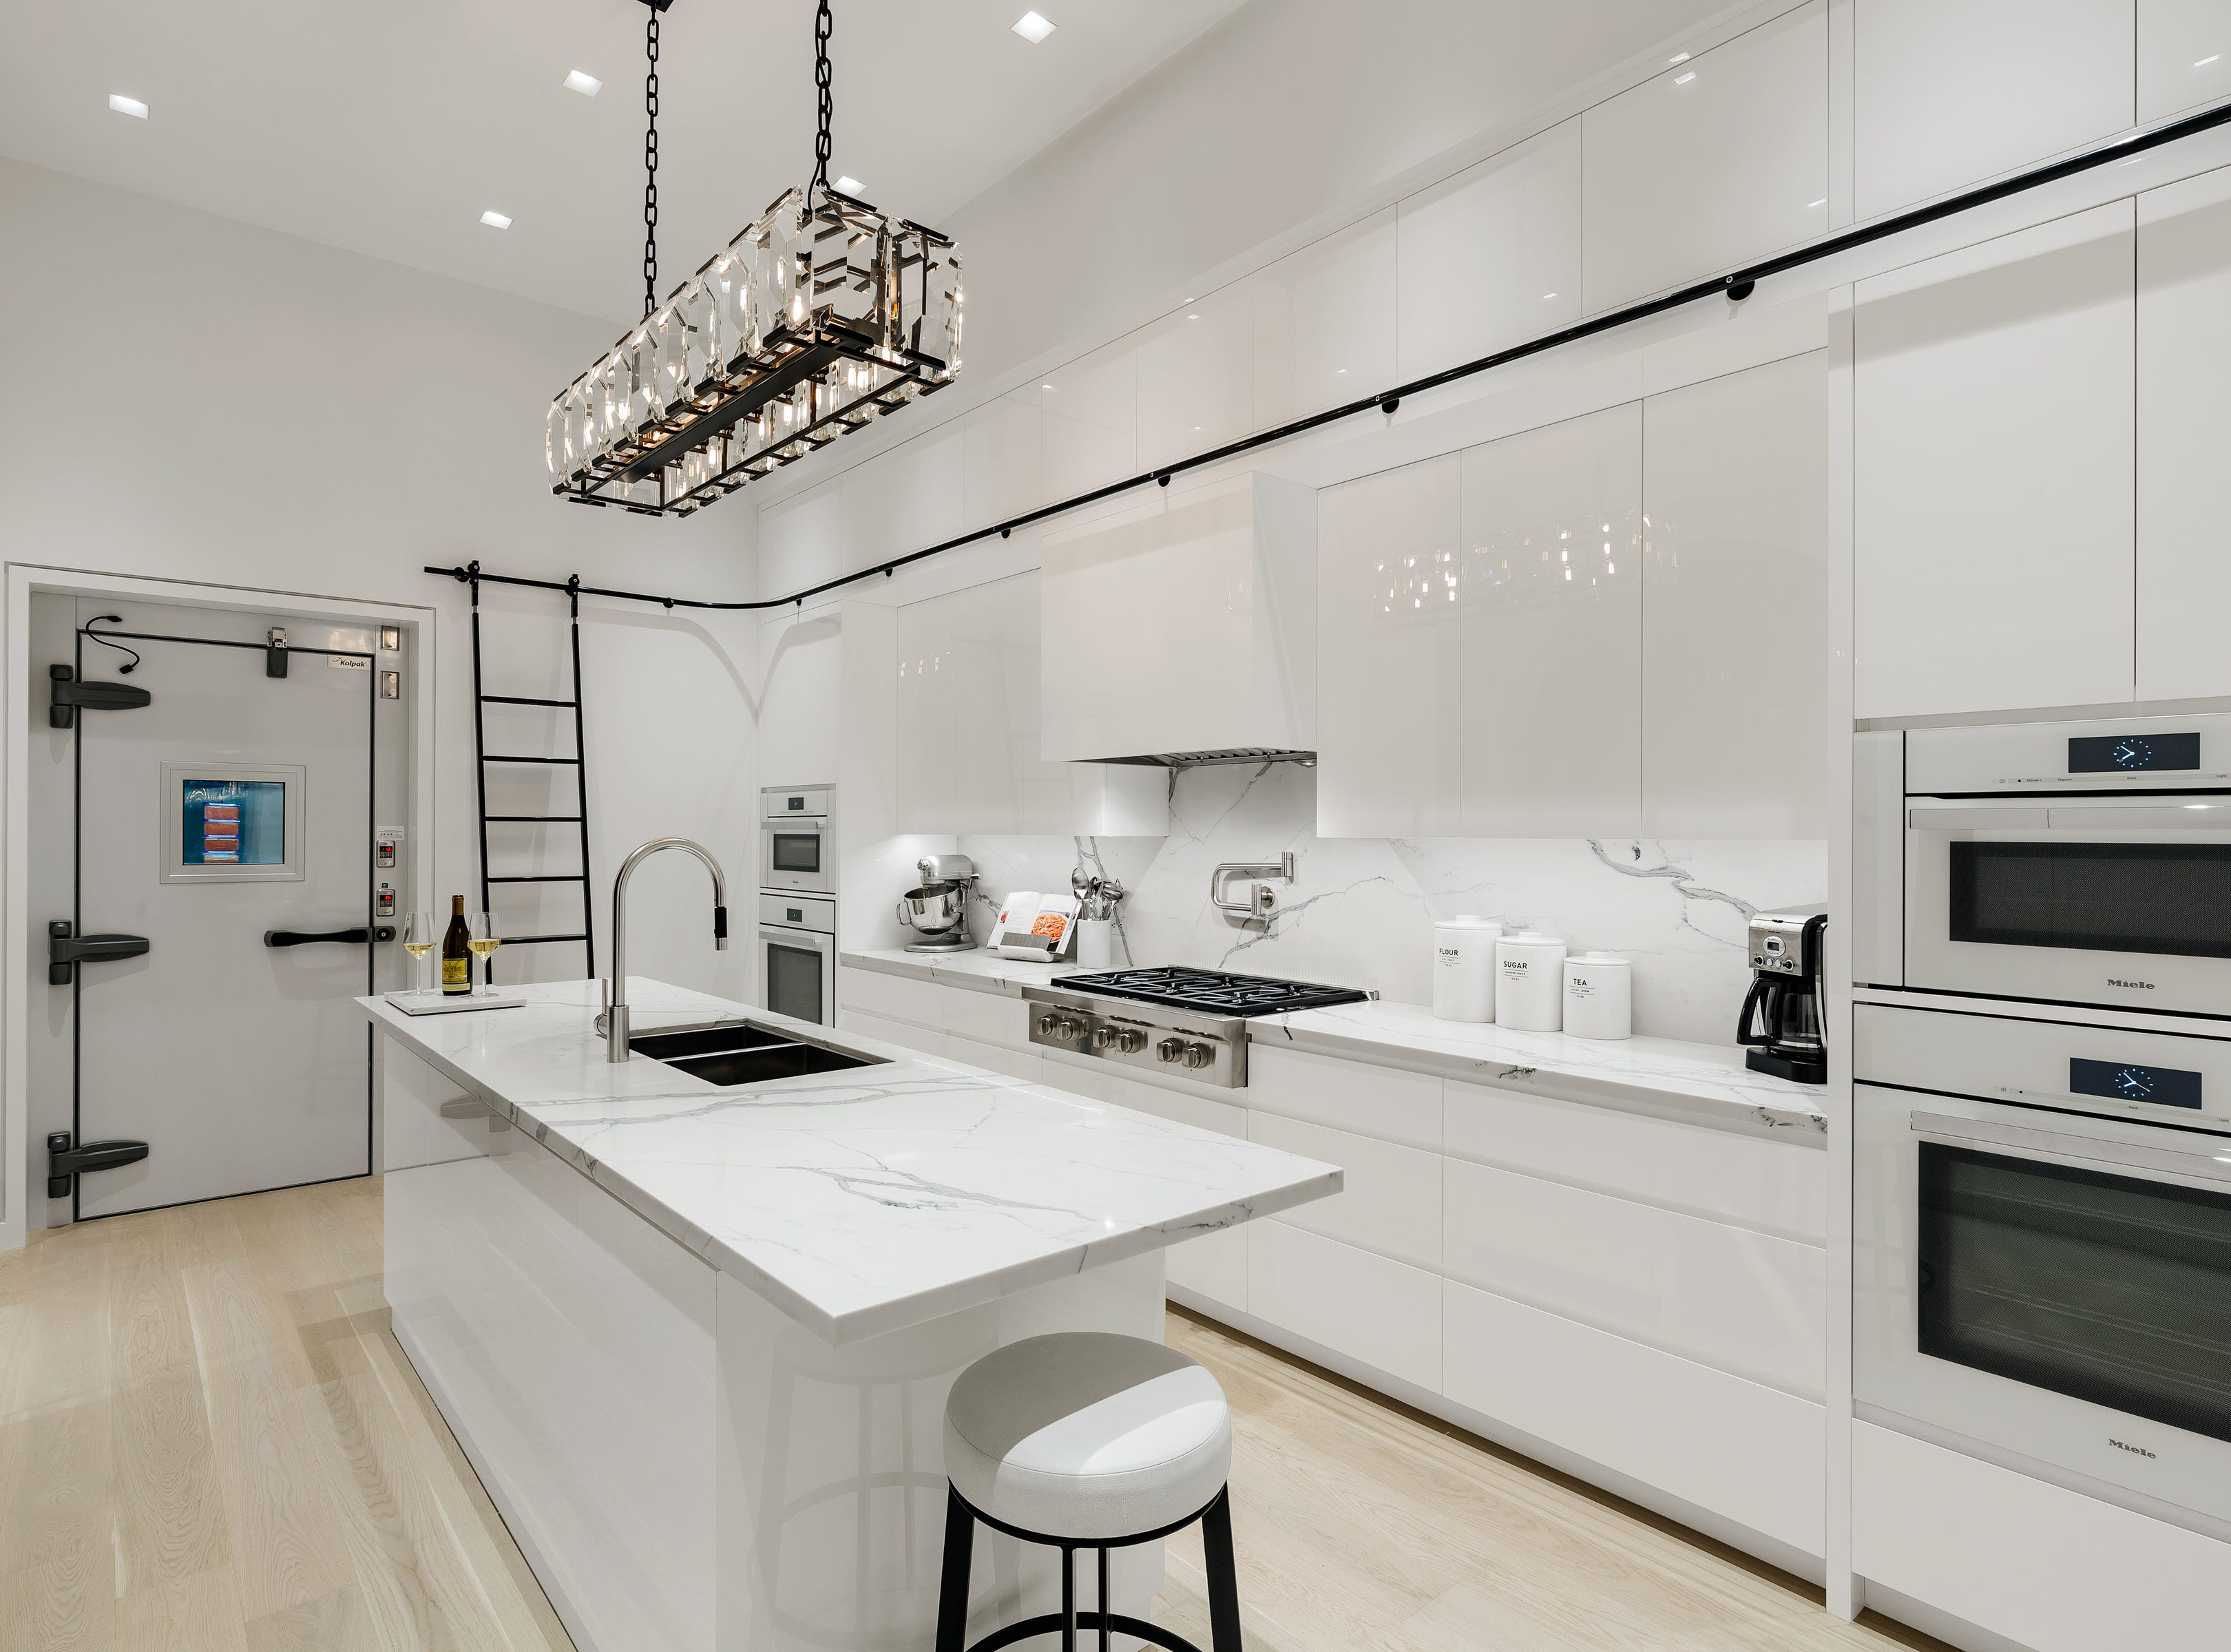 The home also features 10-foot-tall automated doors leading to numerous marble terraces, a commercial walk-in freezer and a master bathroom done entirely in Statuario marble with grey and gold veining.